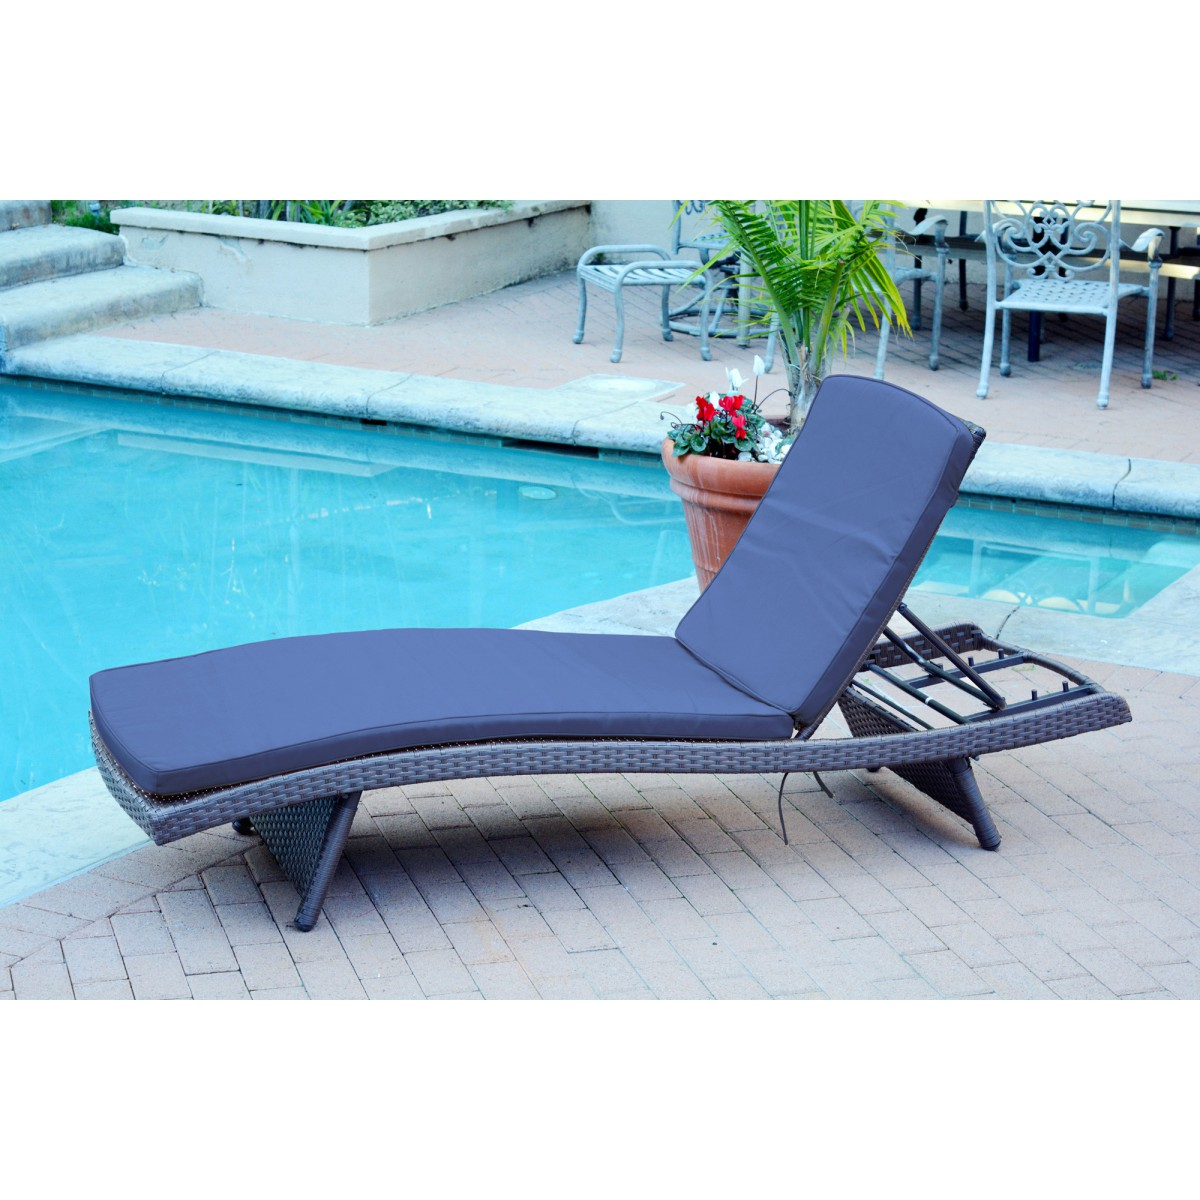 Outdoor wicker patio furniture chaise lounger with navy for 23 w outdoor cushion for chaise